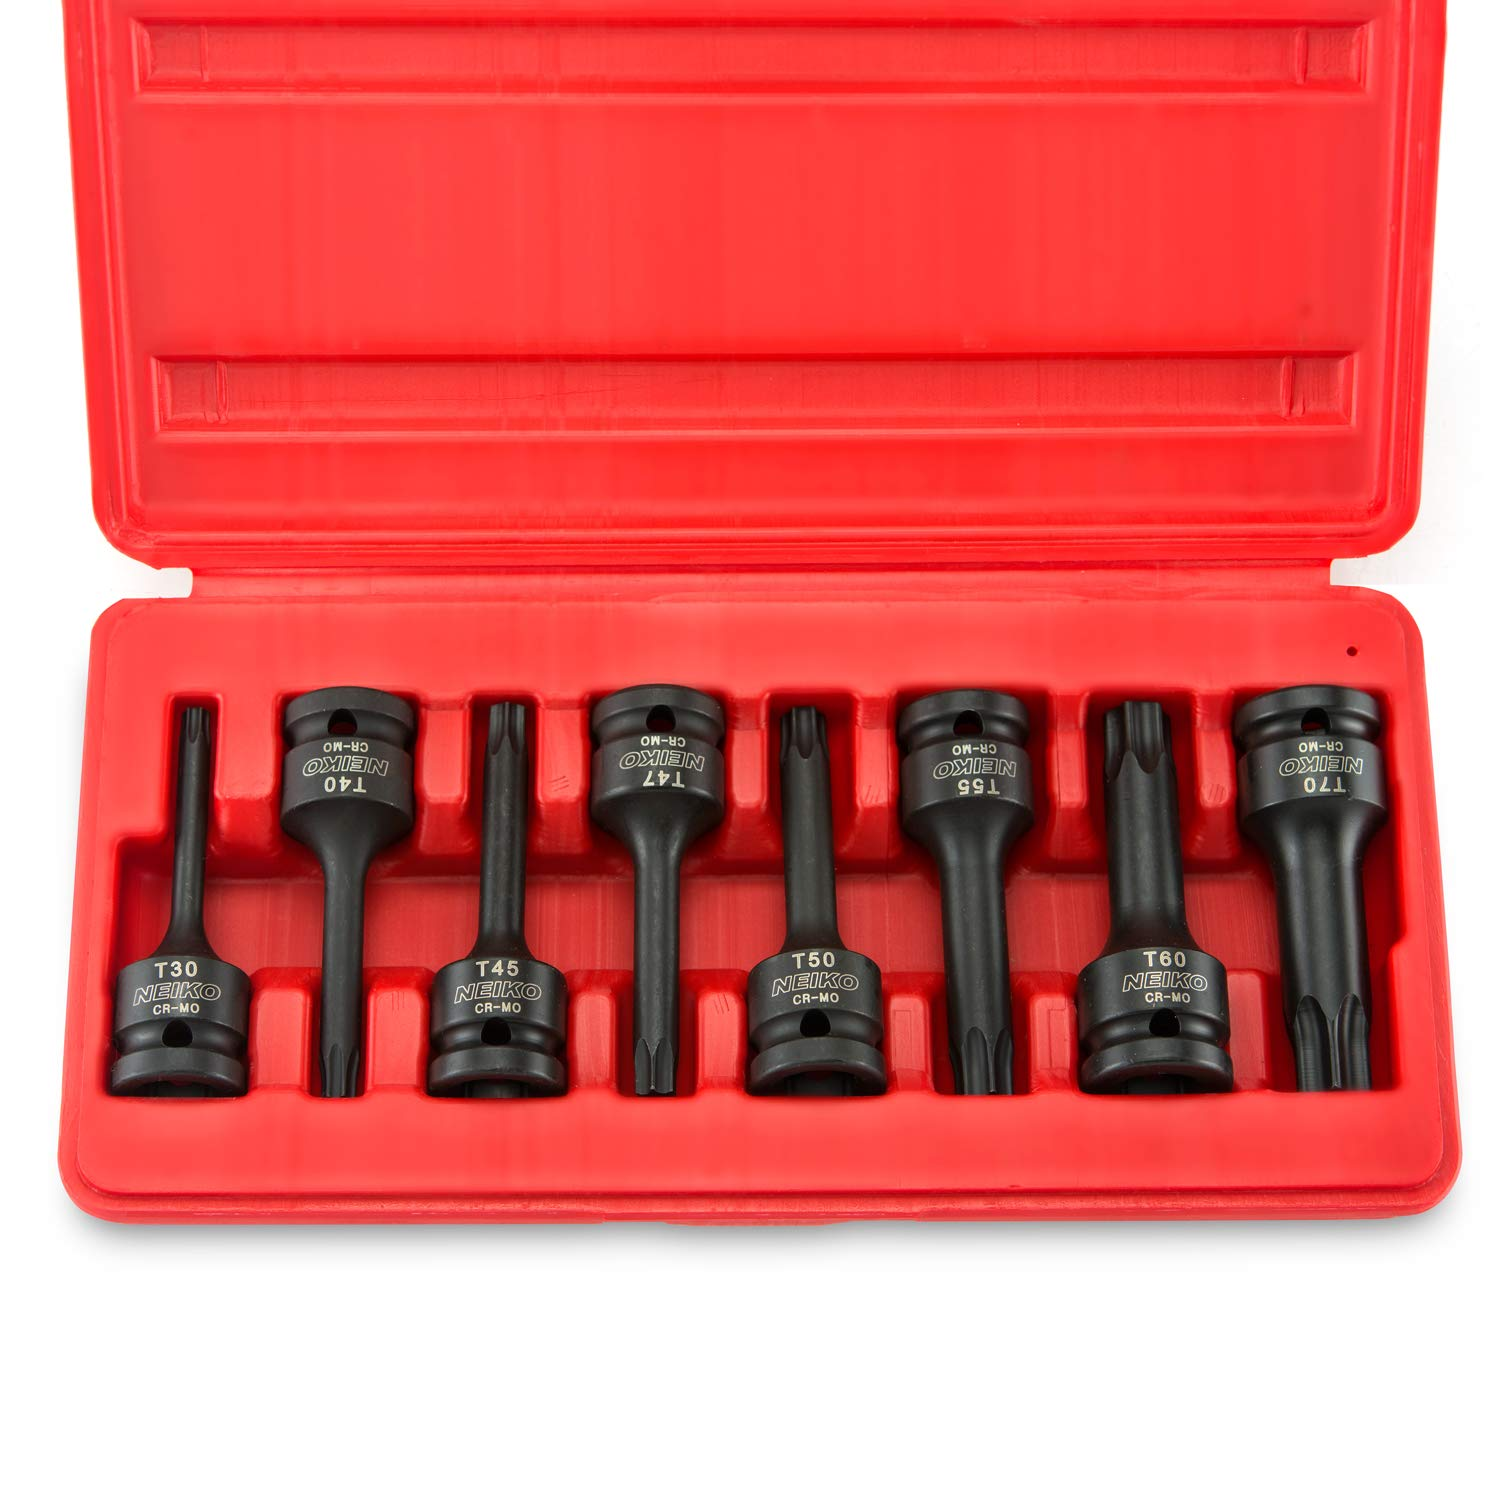 Neiko 01138B 1/2'' Drive Torx Star Driver Bit Socket Set, T30 to T70  | 8-Piece Set, Cr-Mo, Impact Grade, One-Piece Construction, 3-Inch Length by Neiko